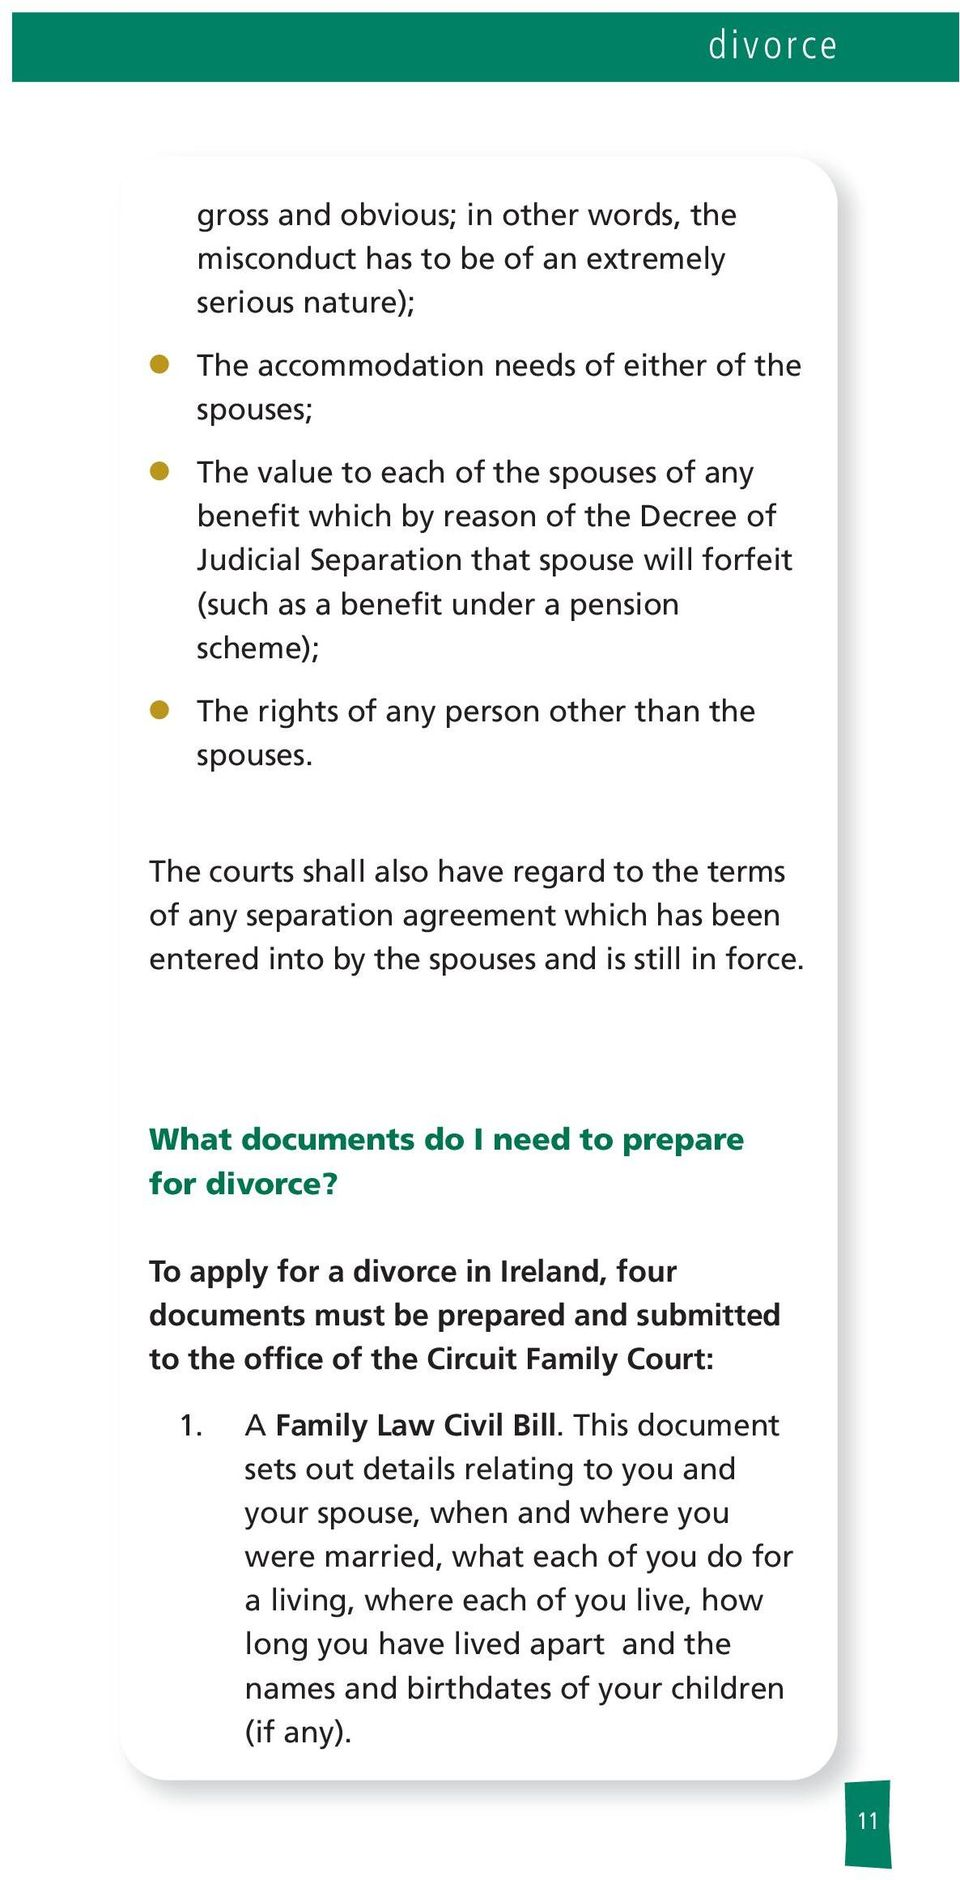 The courts sha aso have regard to the terms of any separation agreement which has been entered into by the spouses and is sti in force. What documents do I need to prepare for divorce?